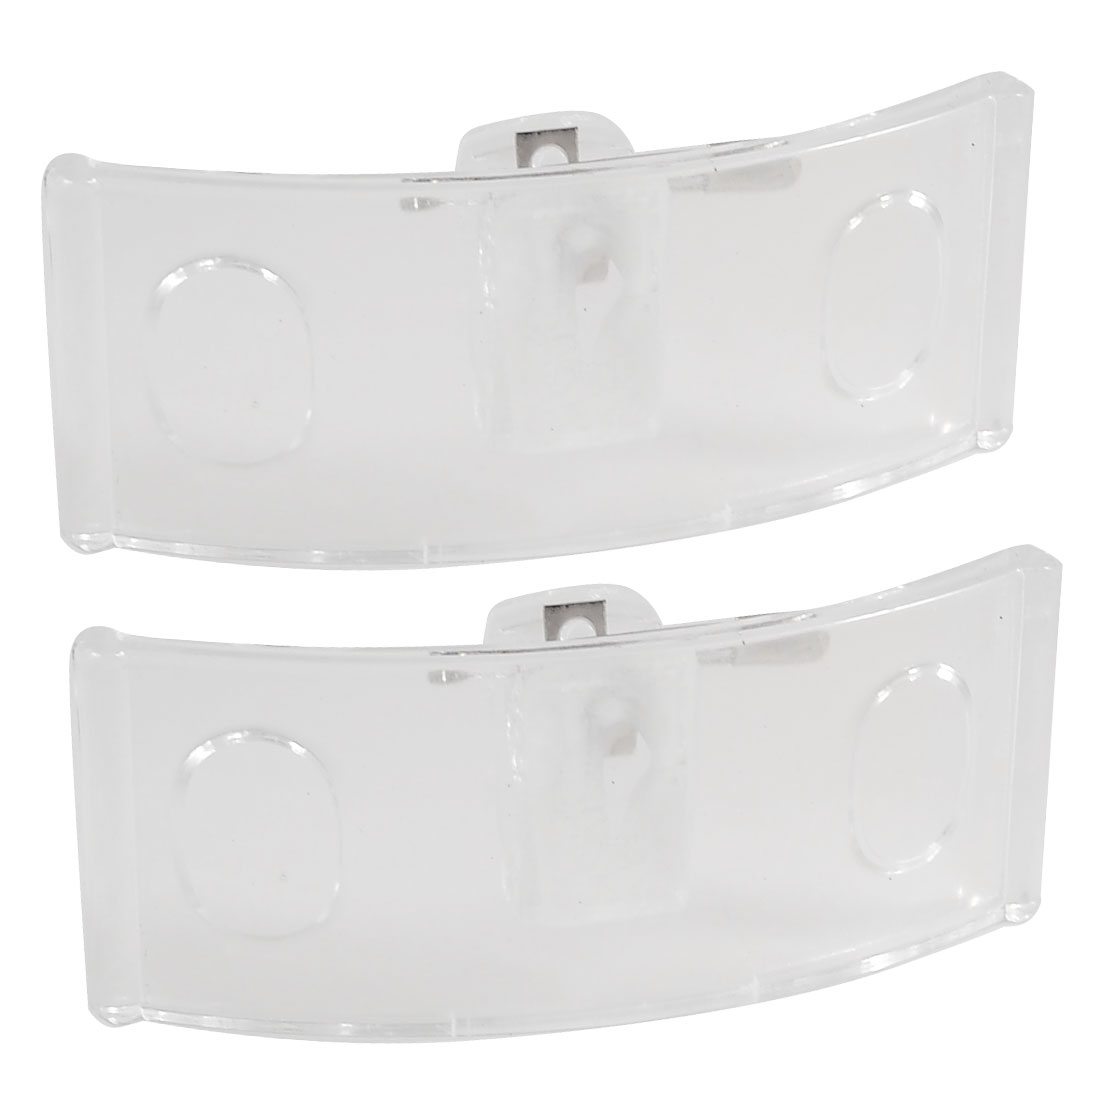 2 Pcs 75mm x 30mm Arch Shaped Clear Hard Plastic Name Tag Holder w Pin